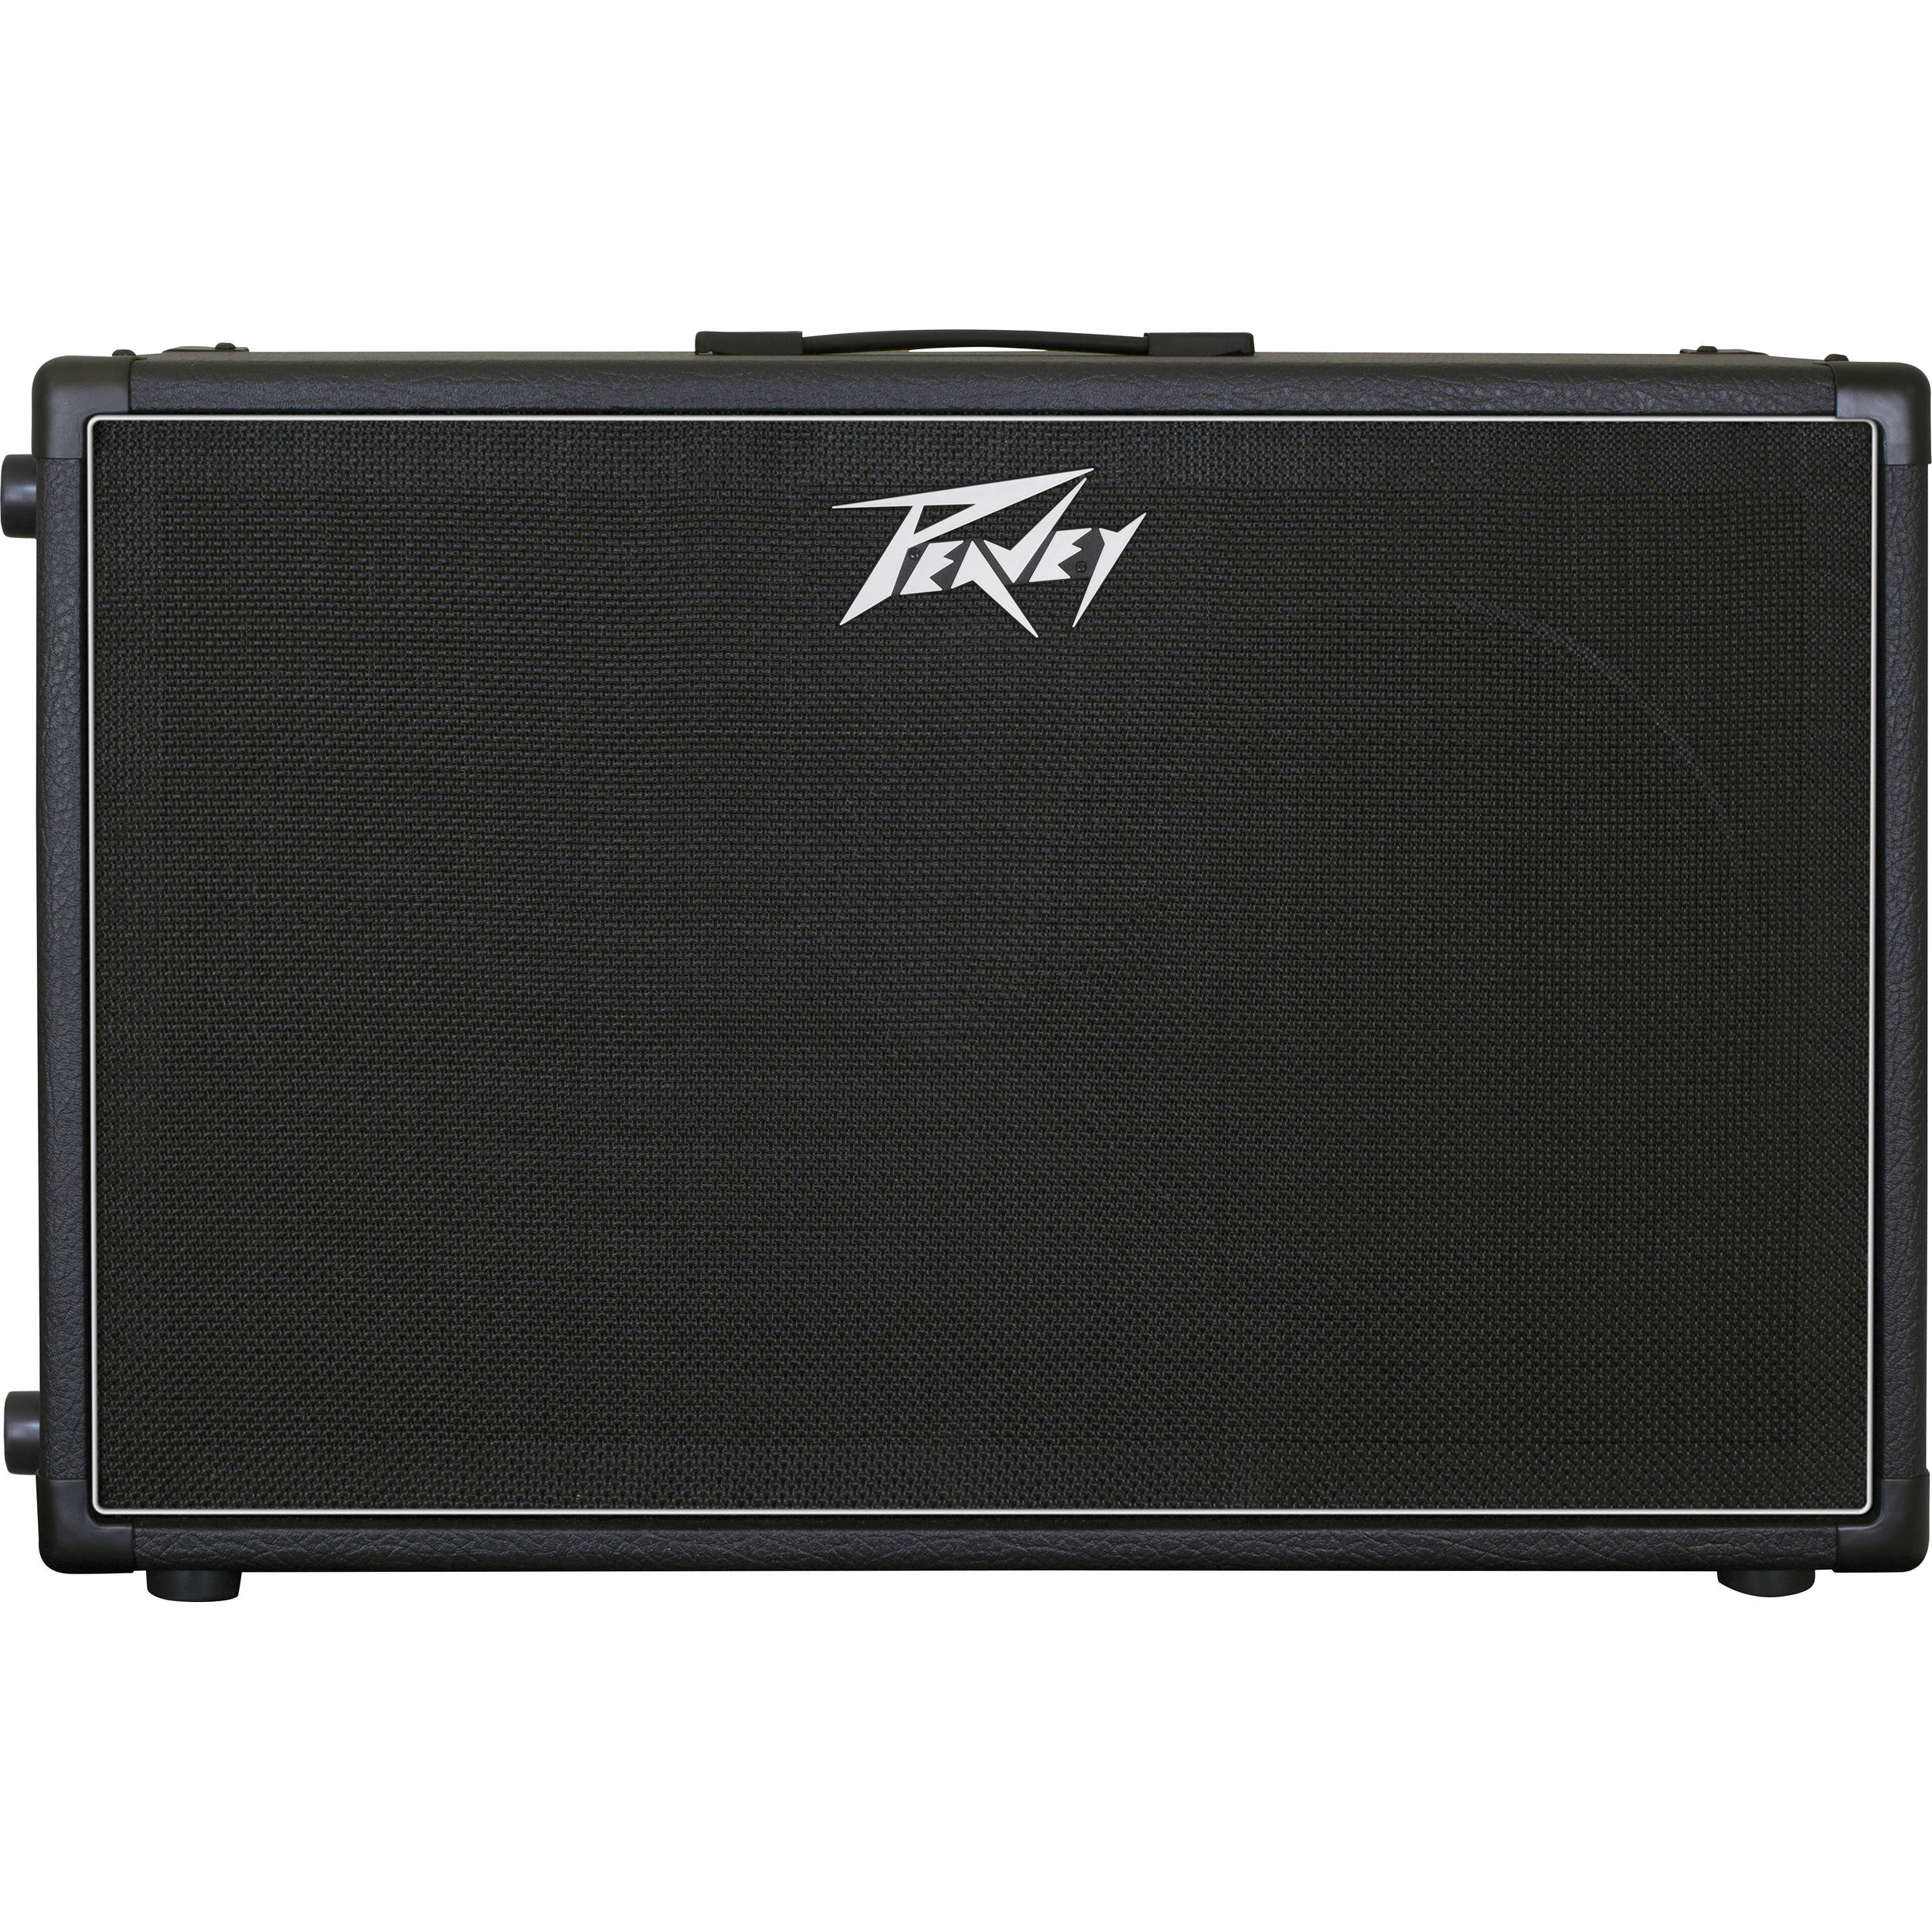 peavey 212 6 electric guitar cab dual 12 speaker cabinet w mic stand cable new pev16 package110. Black Bedroom Furniture Sets. Home Design Ideas